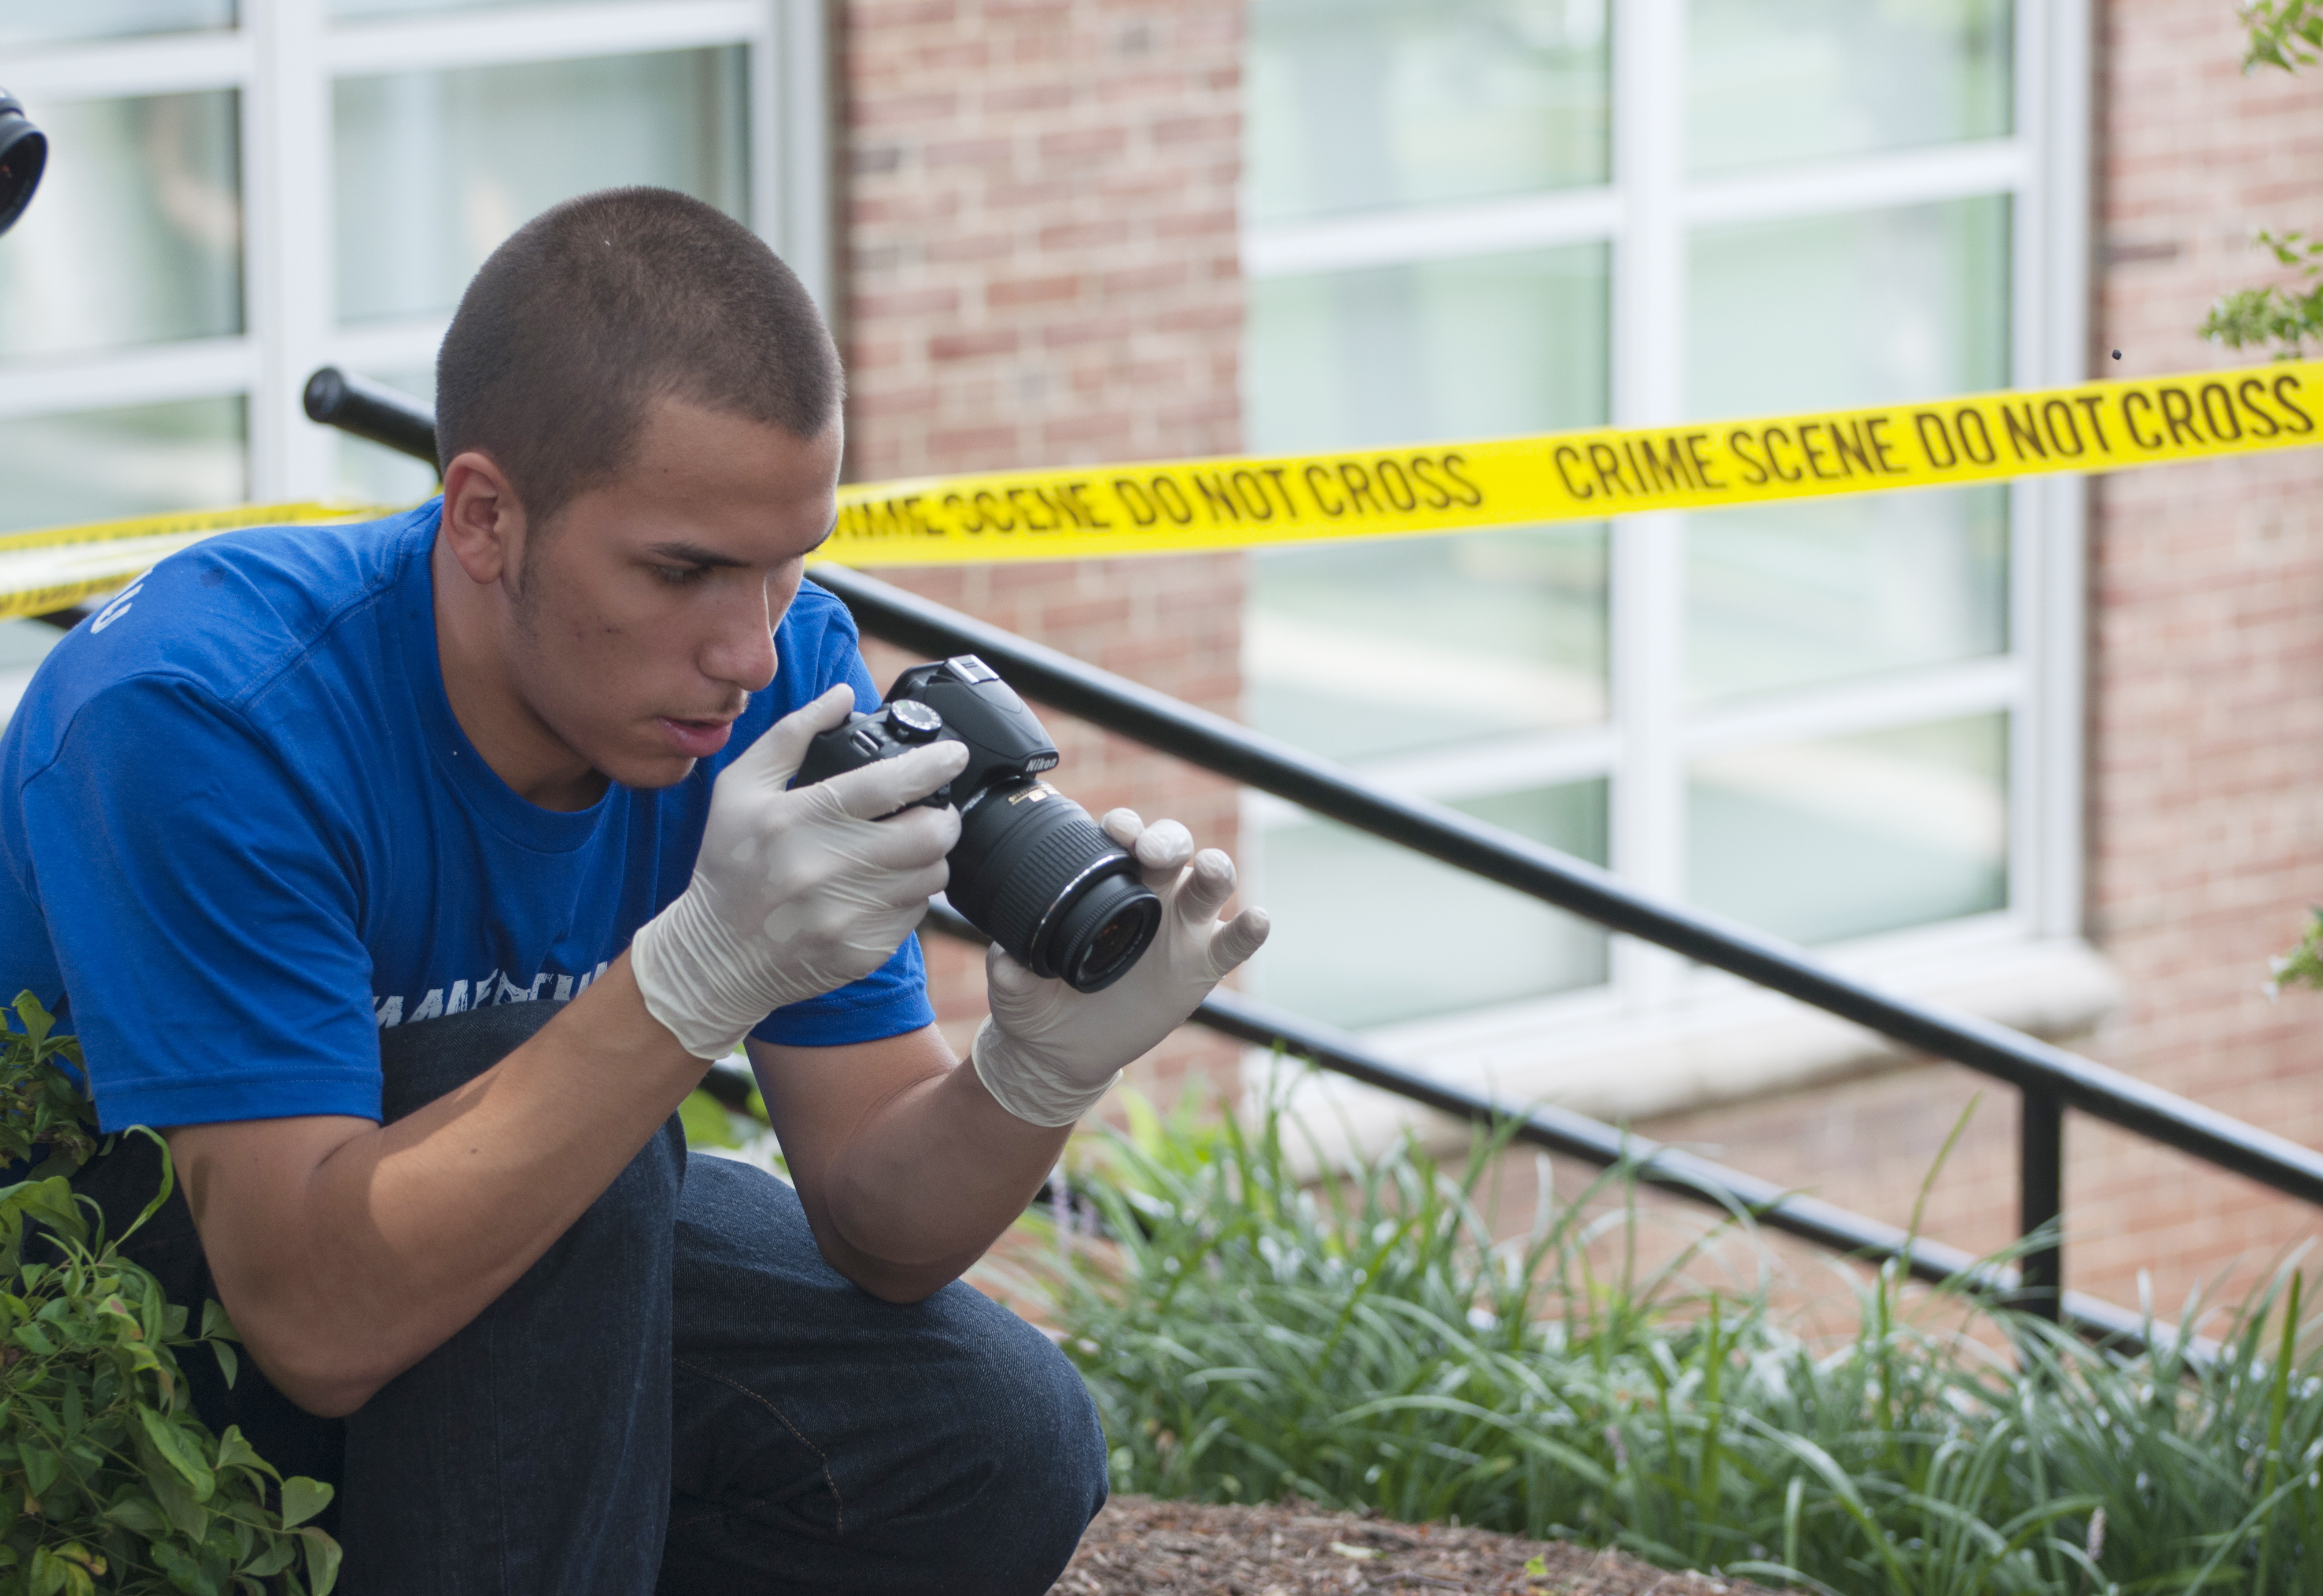 Student taking a photo to inspect a mock crime scene